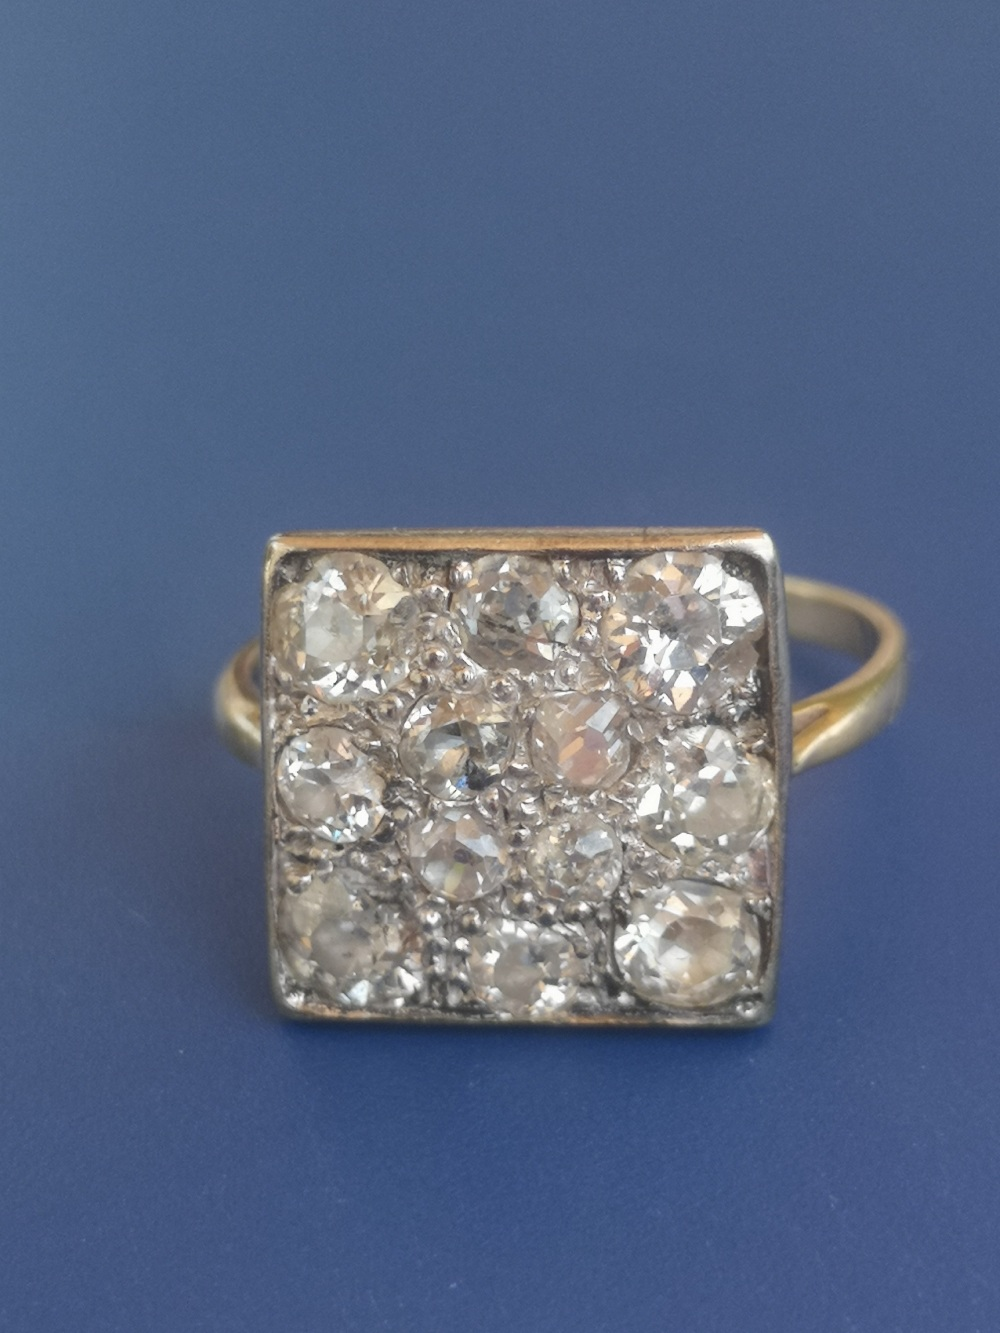 A diamond dress ring having a square pave setting on yellow metal shank. Finger size L.